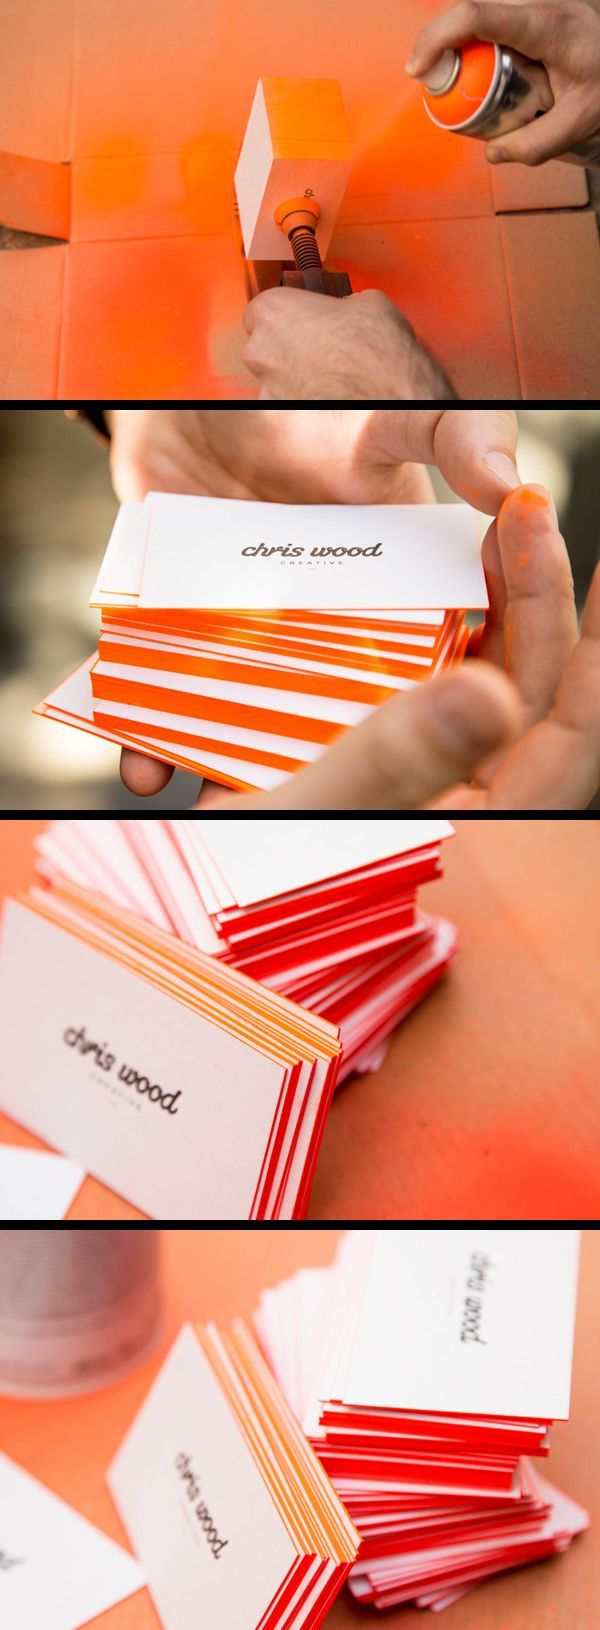 Your business card is your first opportunity to make a positive and strong impression on your potential customers. Be unique!